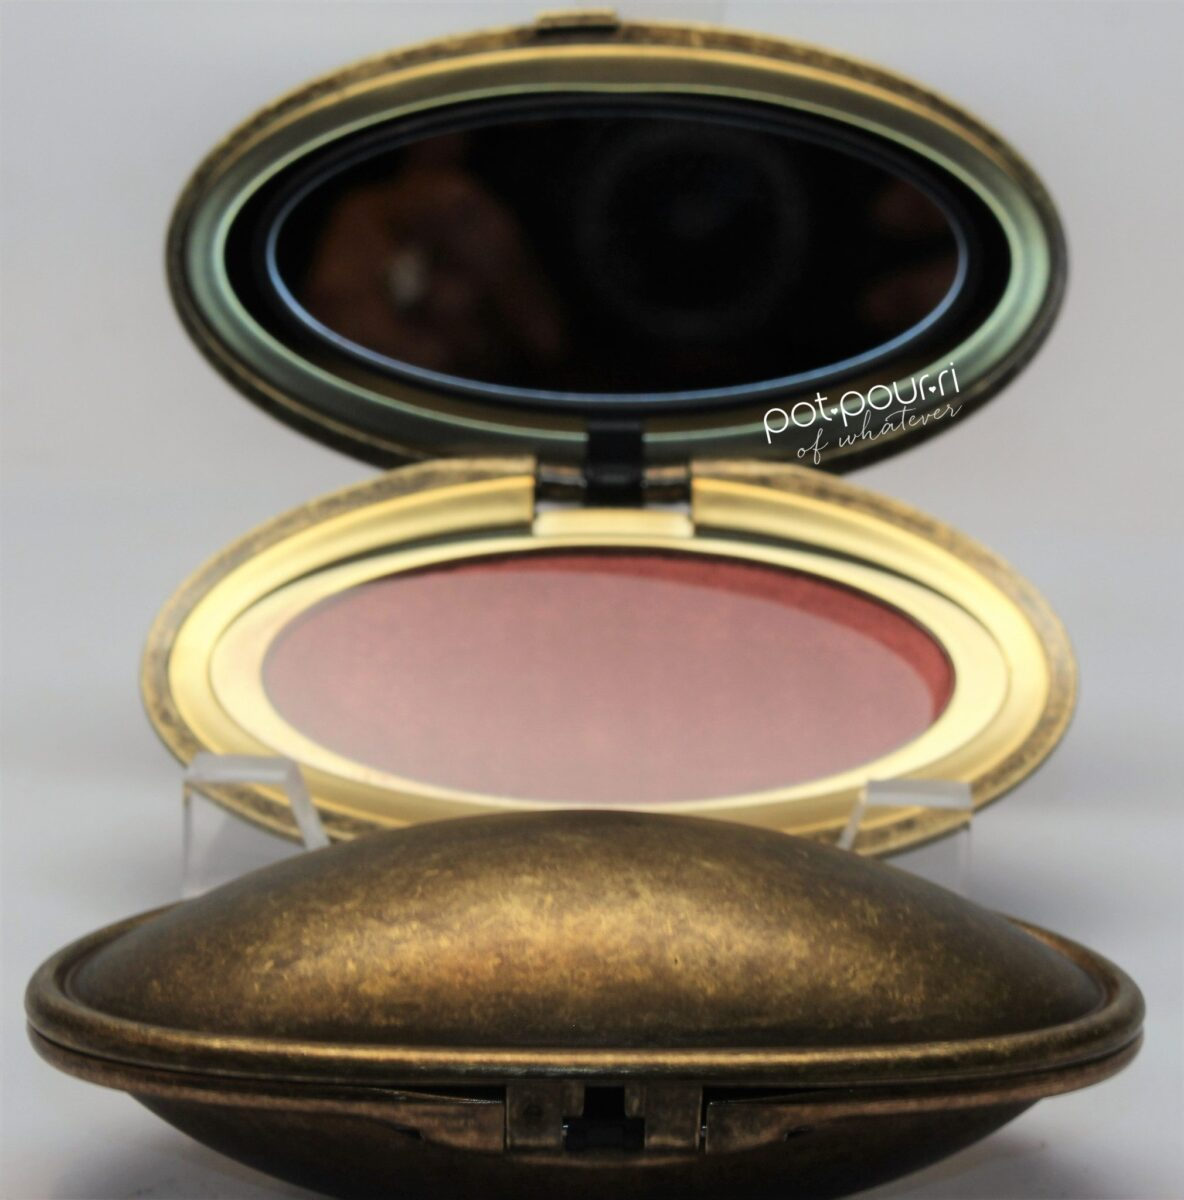 mac-face-powder-blush-opened-compact-by-robert-lee-morris